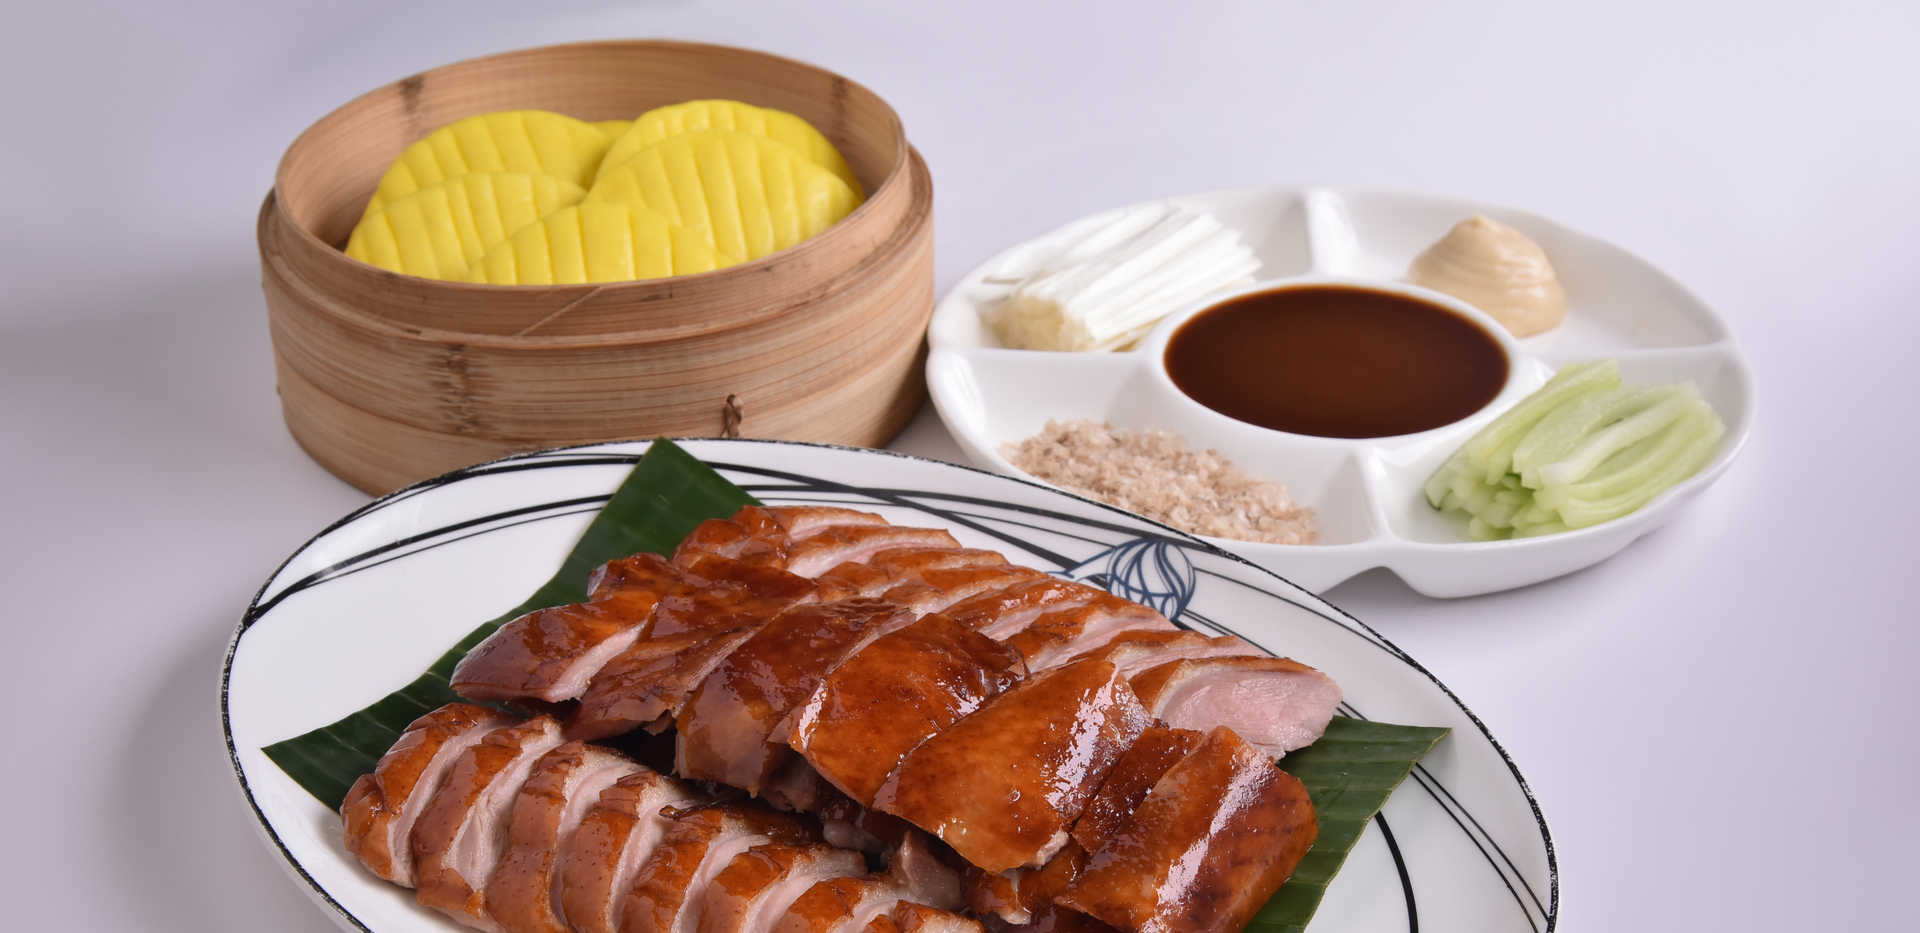 Duck_Signature Slow Roasted Duck 招牌慢烤原隻燒